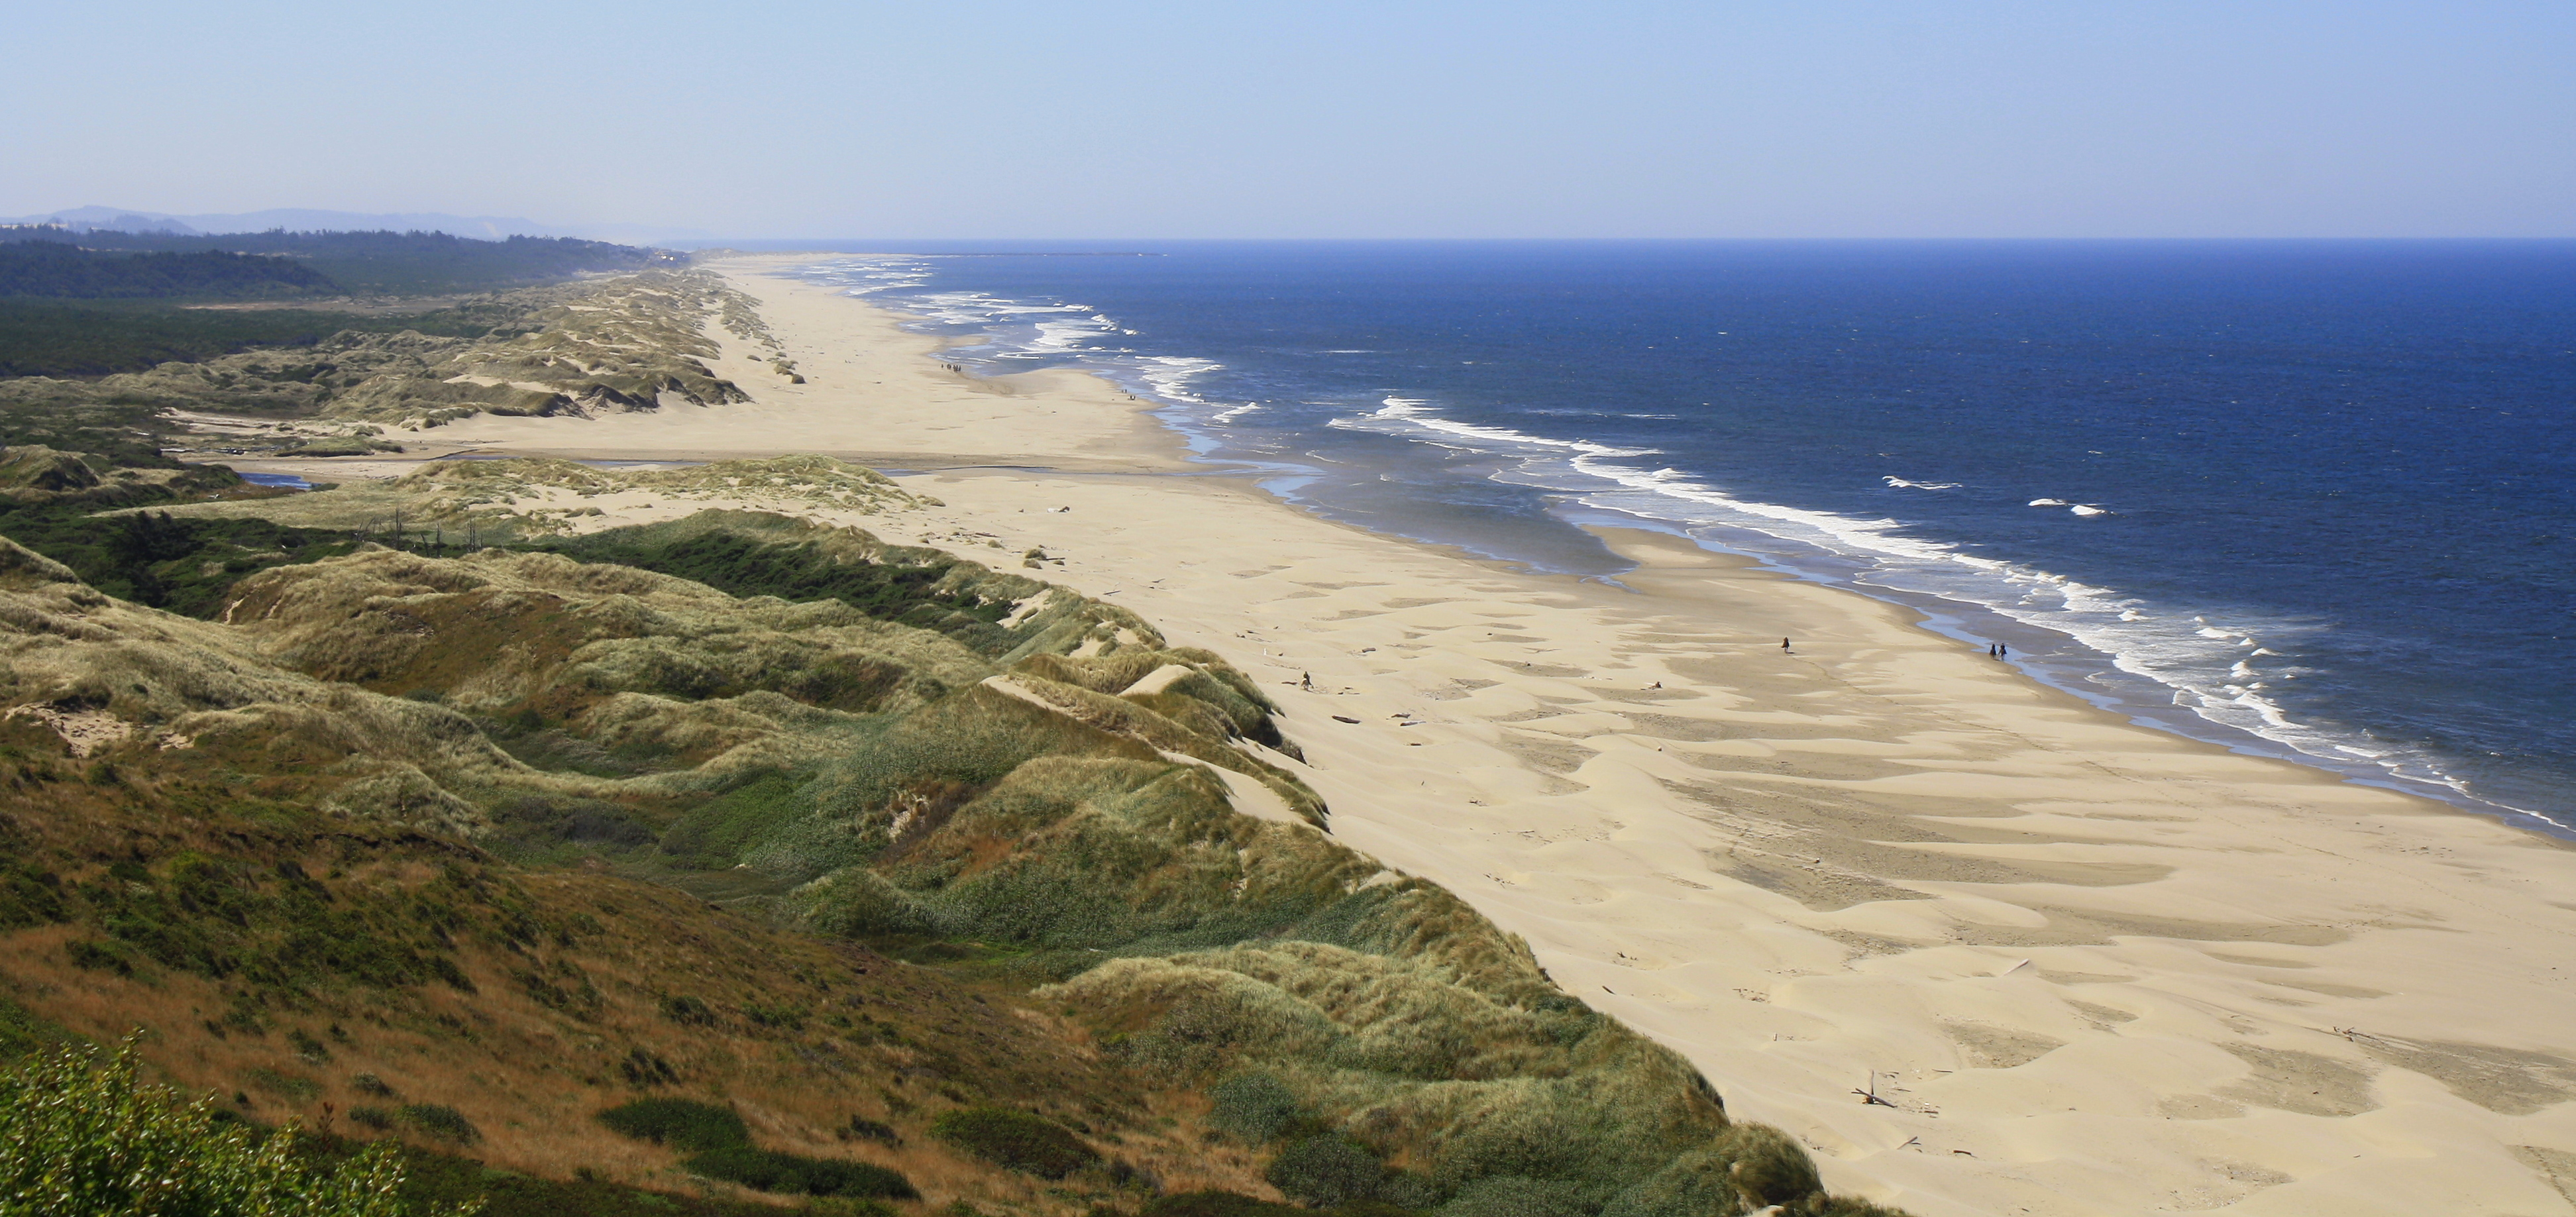 Oregon Dunes National Recreation Area Protected Area in Oregon